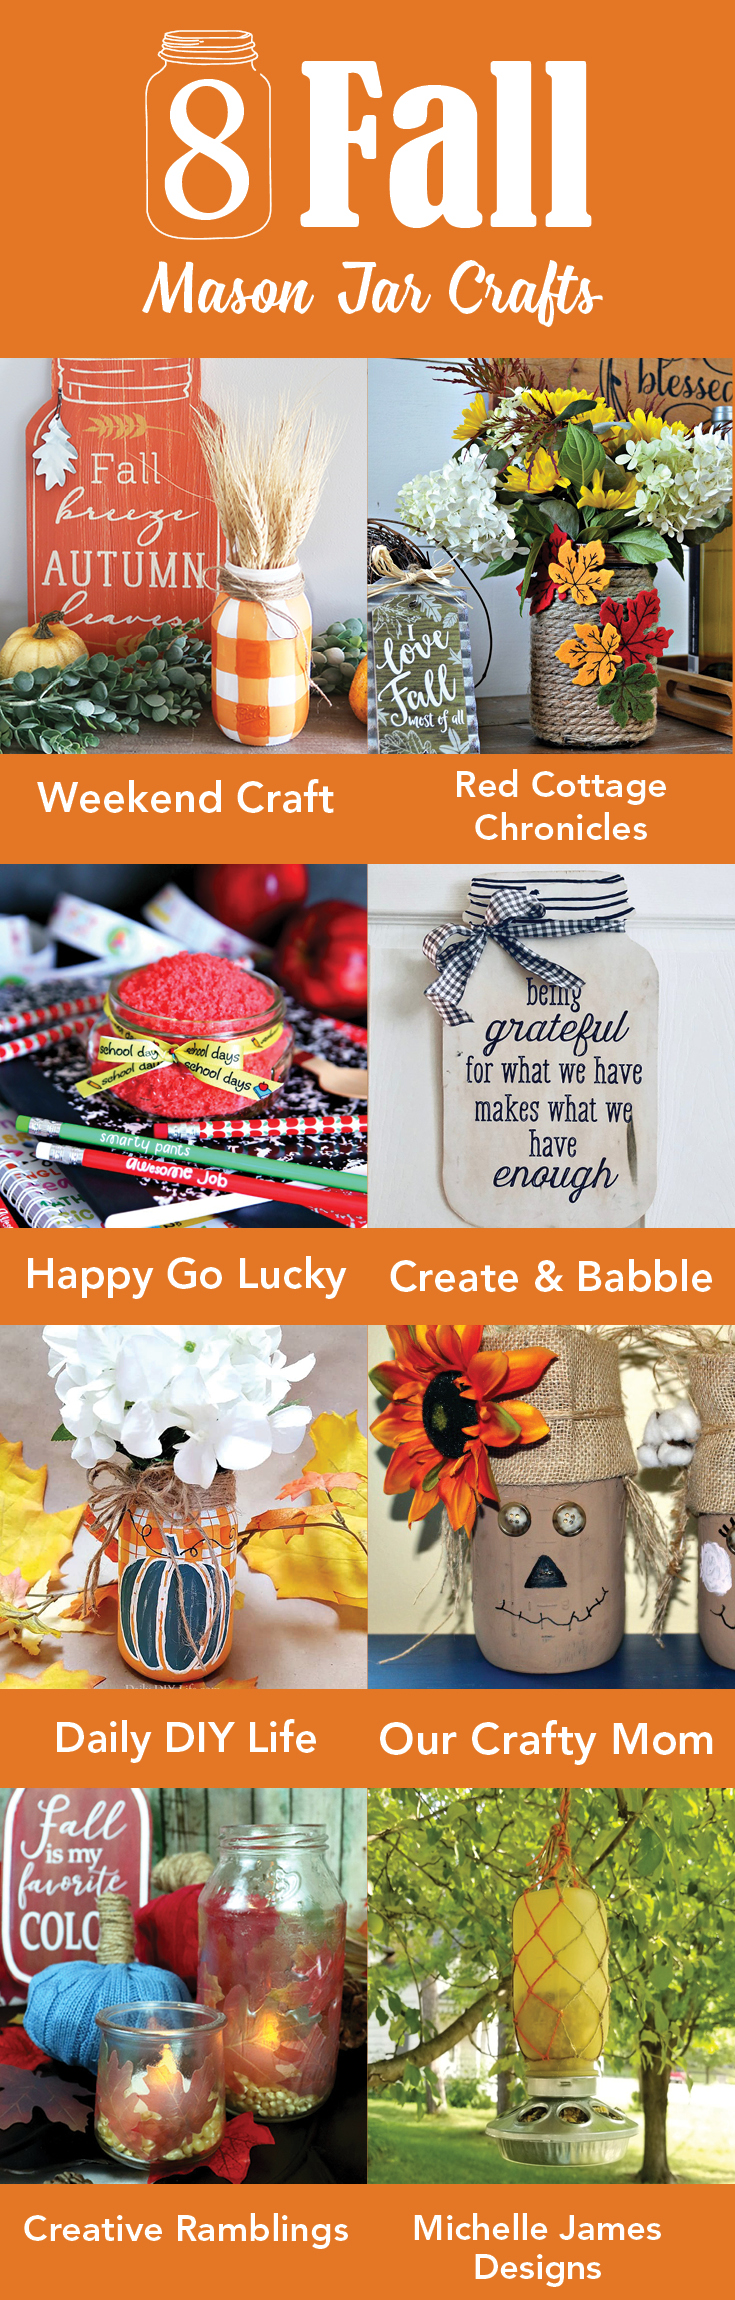 8 Fall Mason jar crafts